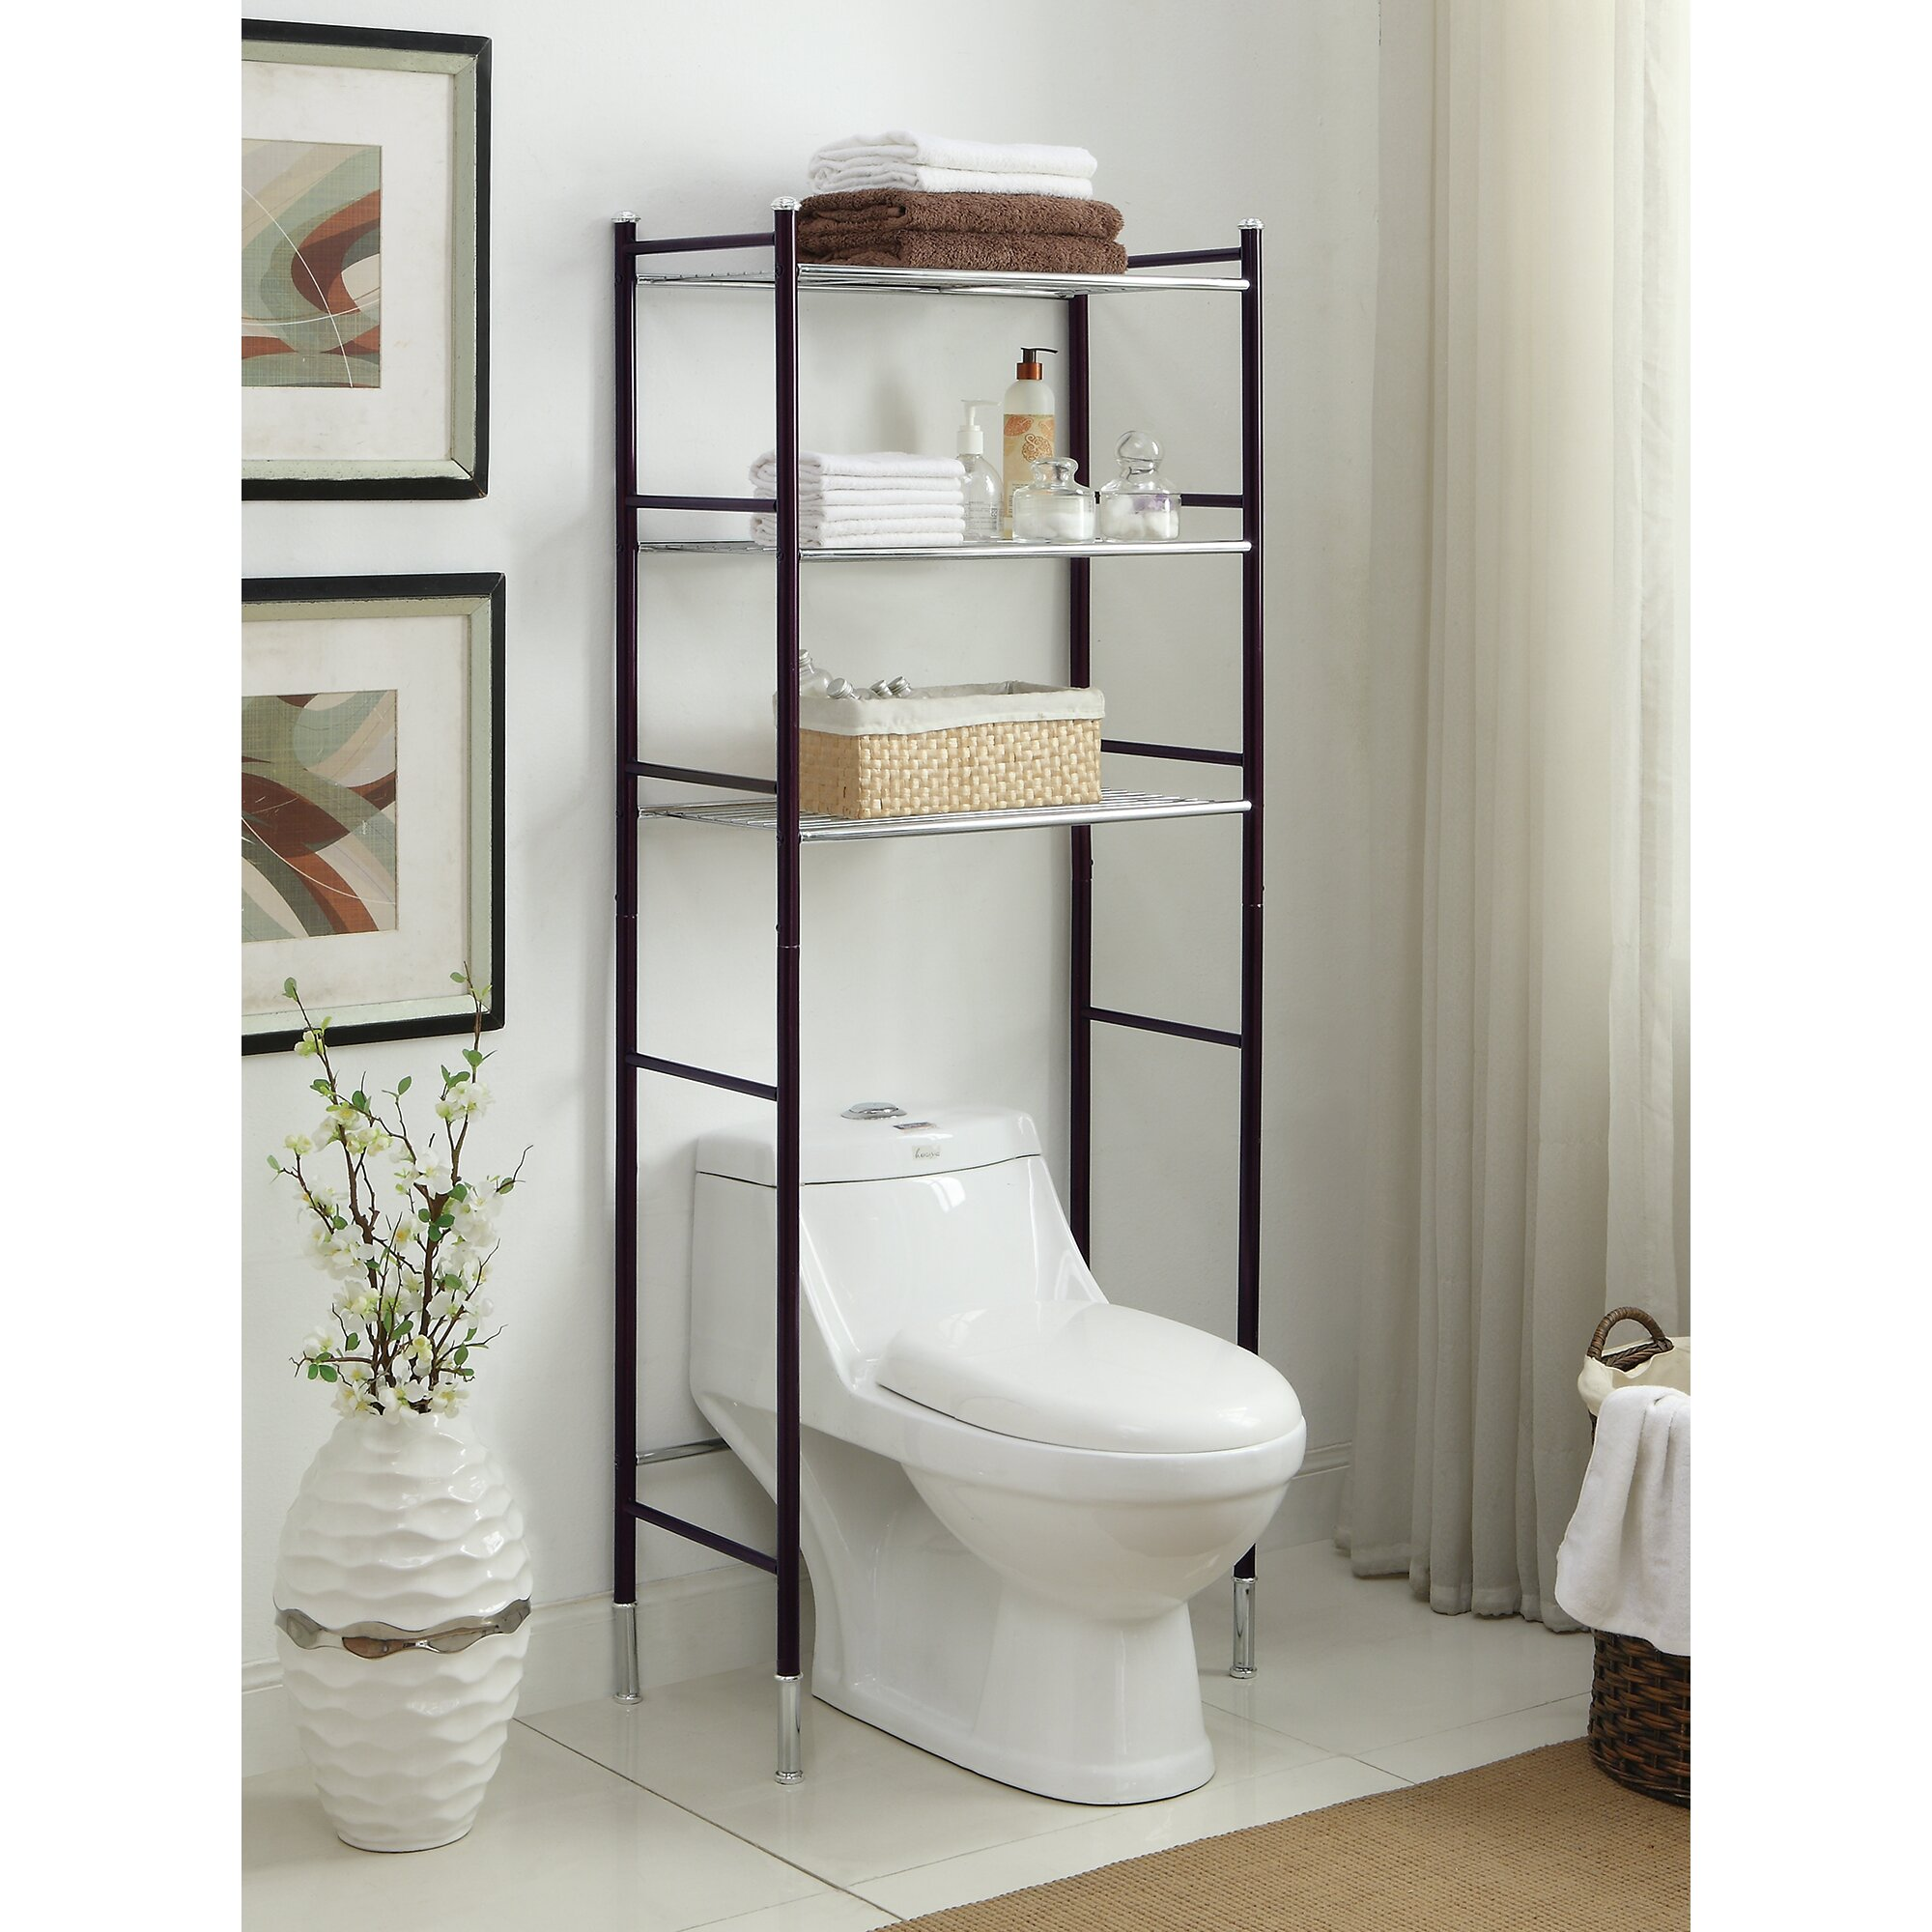 oia duplex 24 w x h over the toilet storage. Black Bedroom Furniture Sets. Home Design Ideas